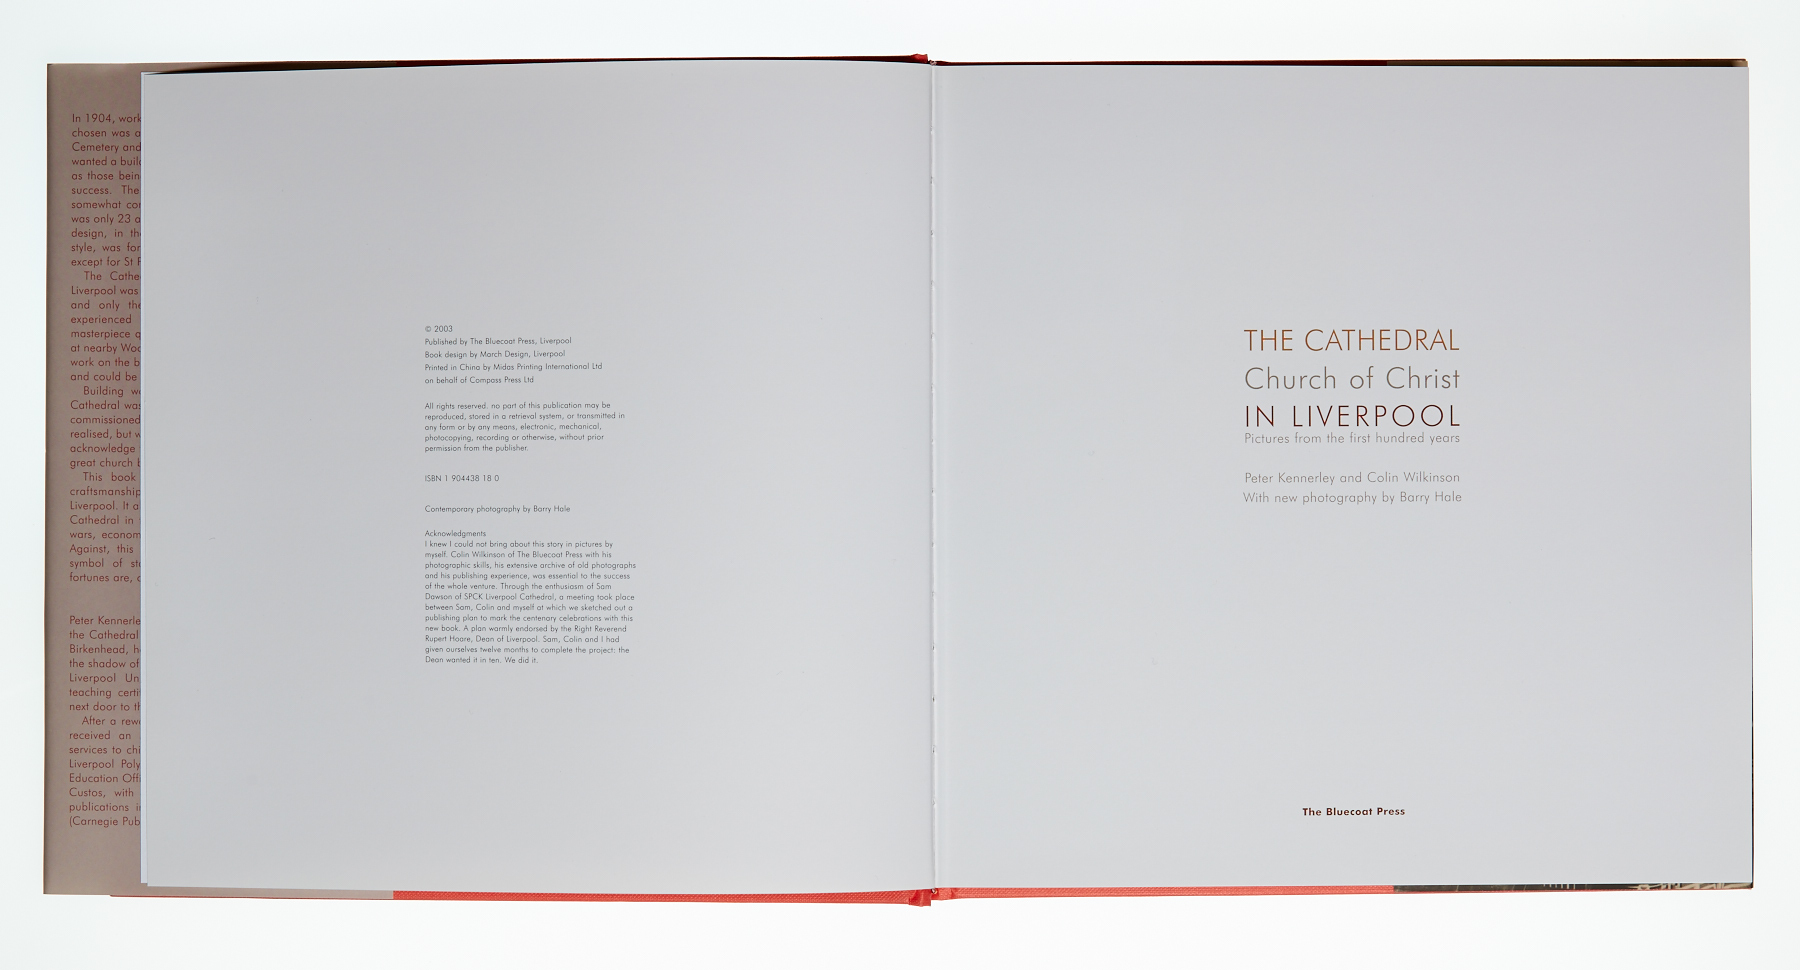 liverpool-cathedral-book-page-02.jpg